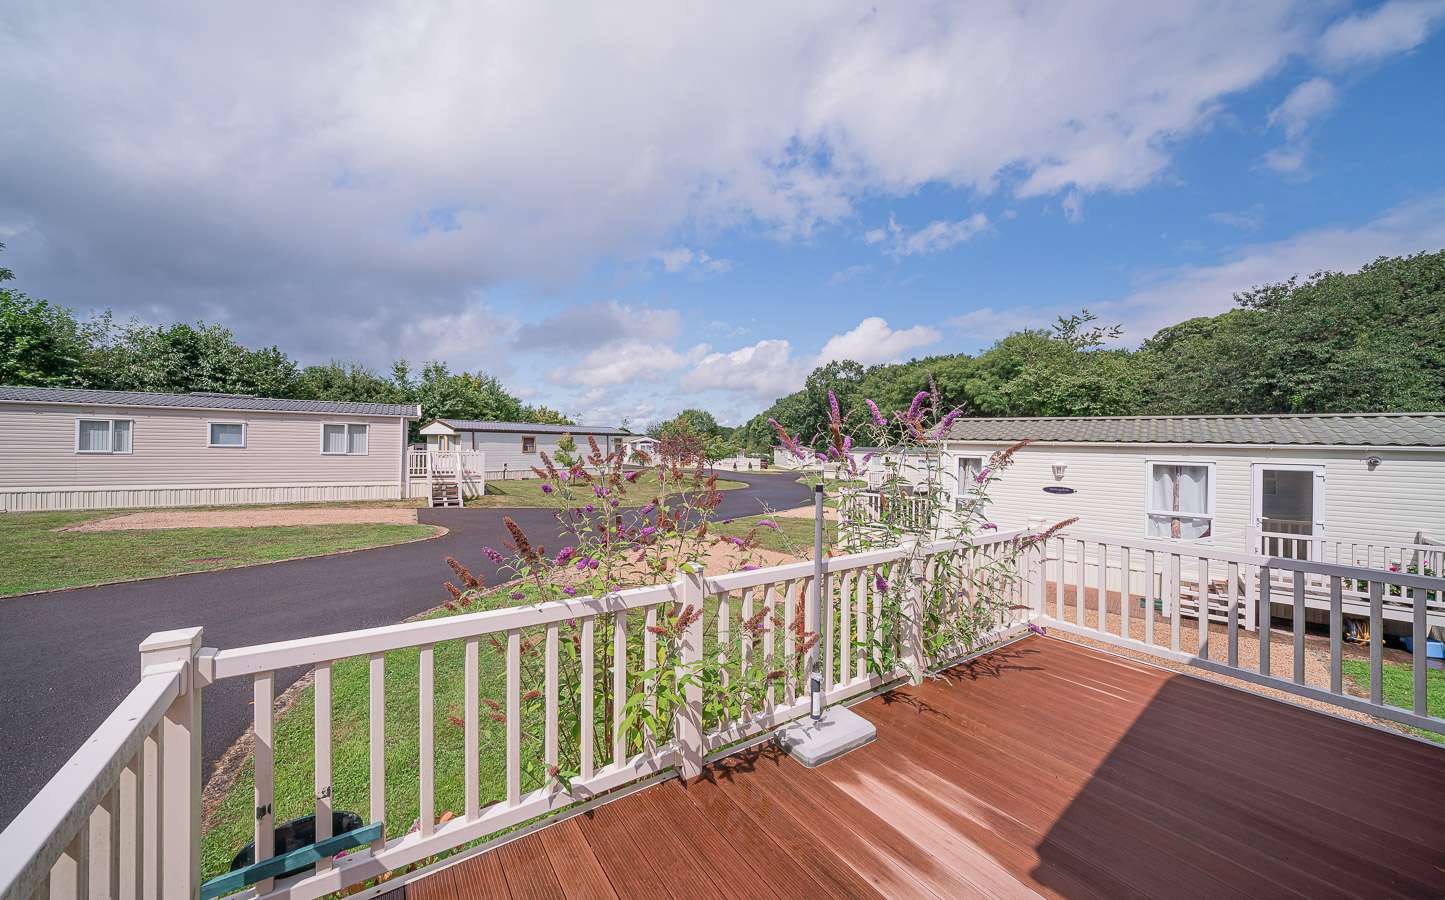 Monkton-Wyld-Static-Mobile-Holiday-Home-Sale-Plot-8-Charmouth-Lyme-Regis-West-Dorset-10